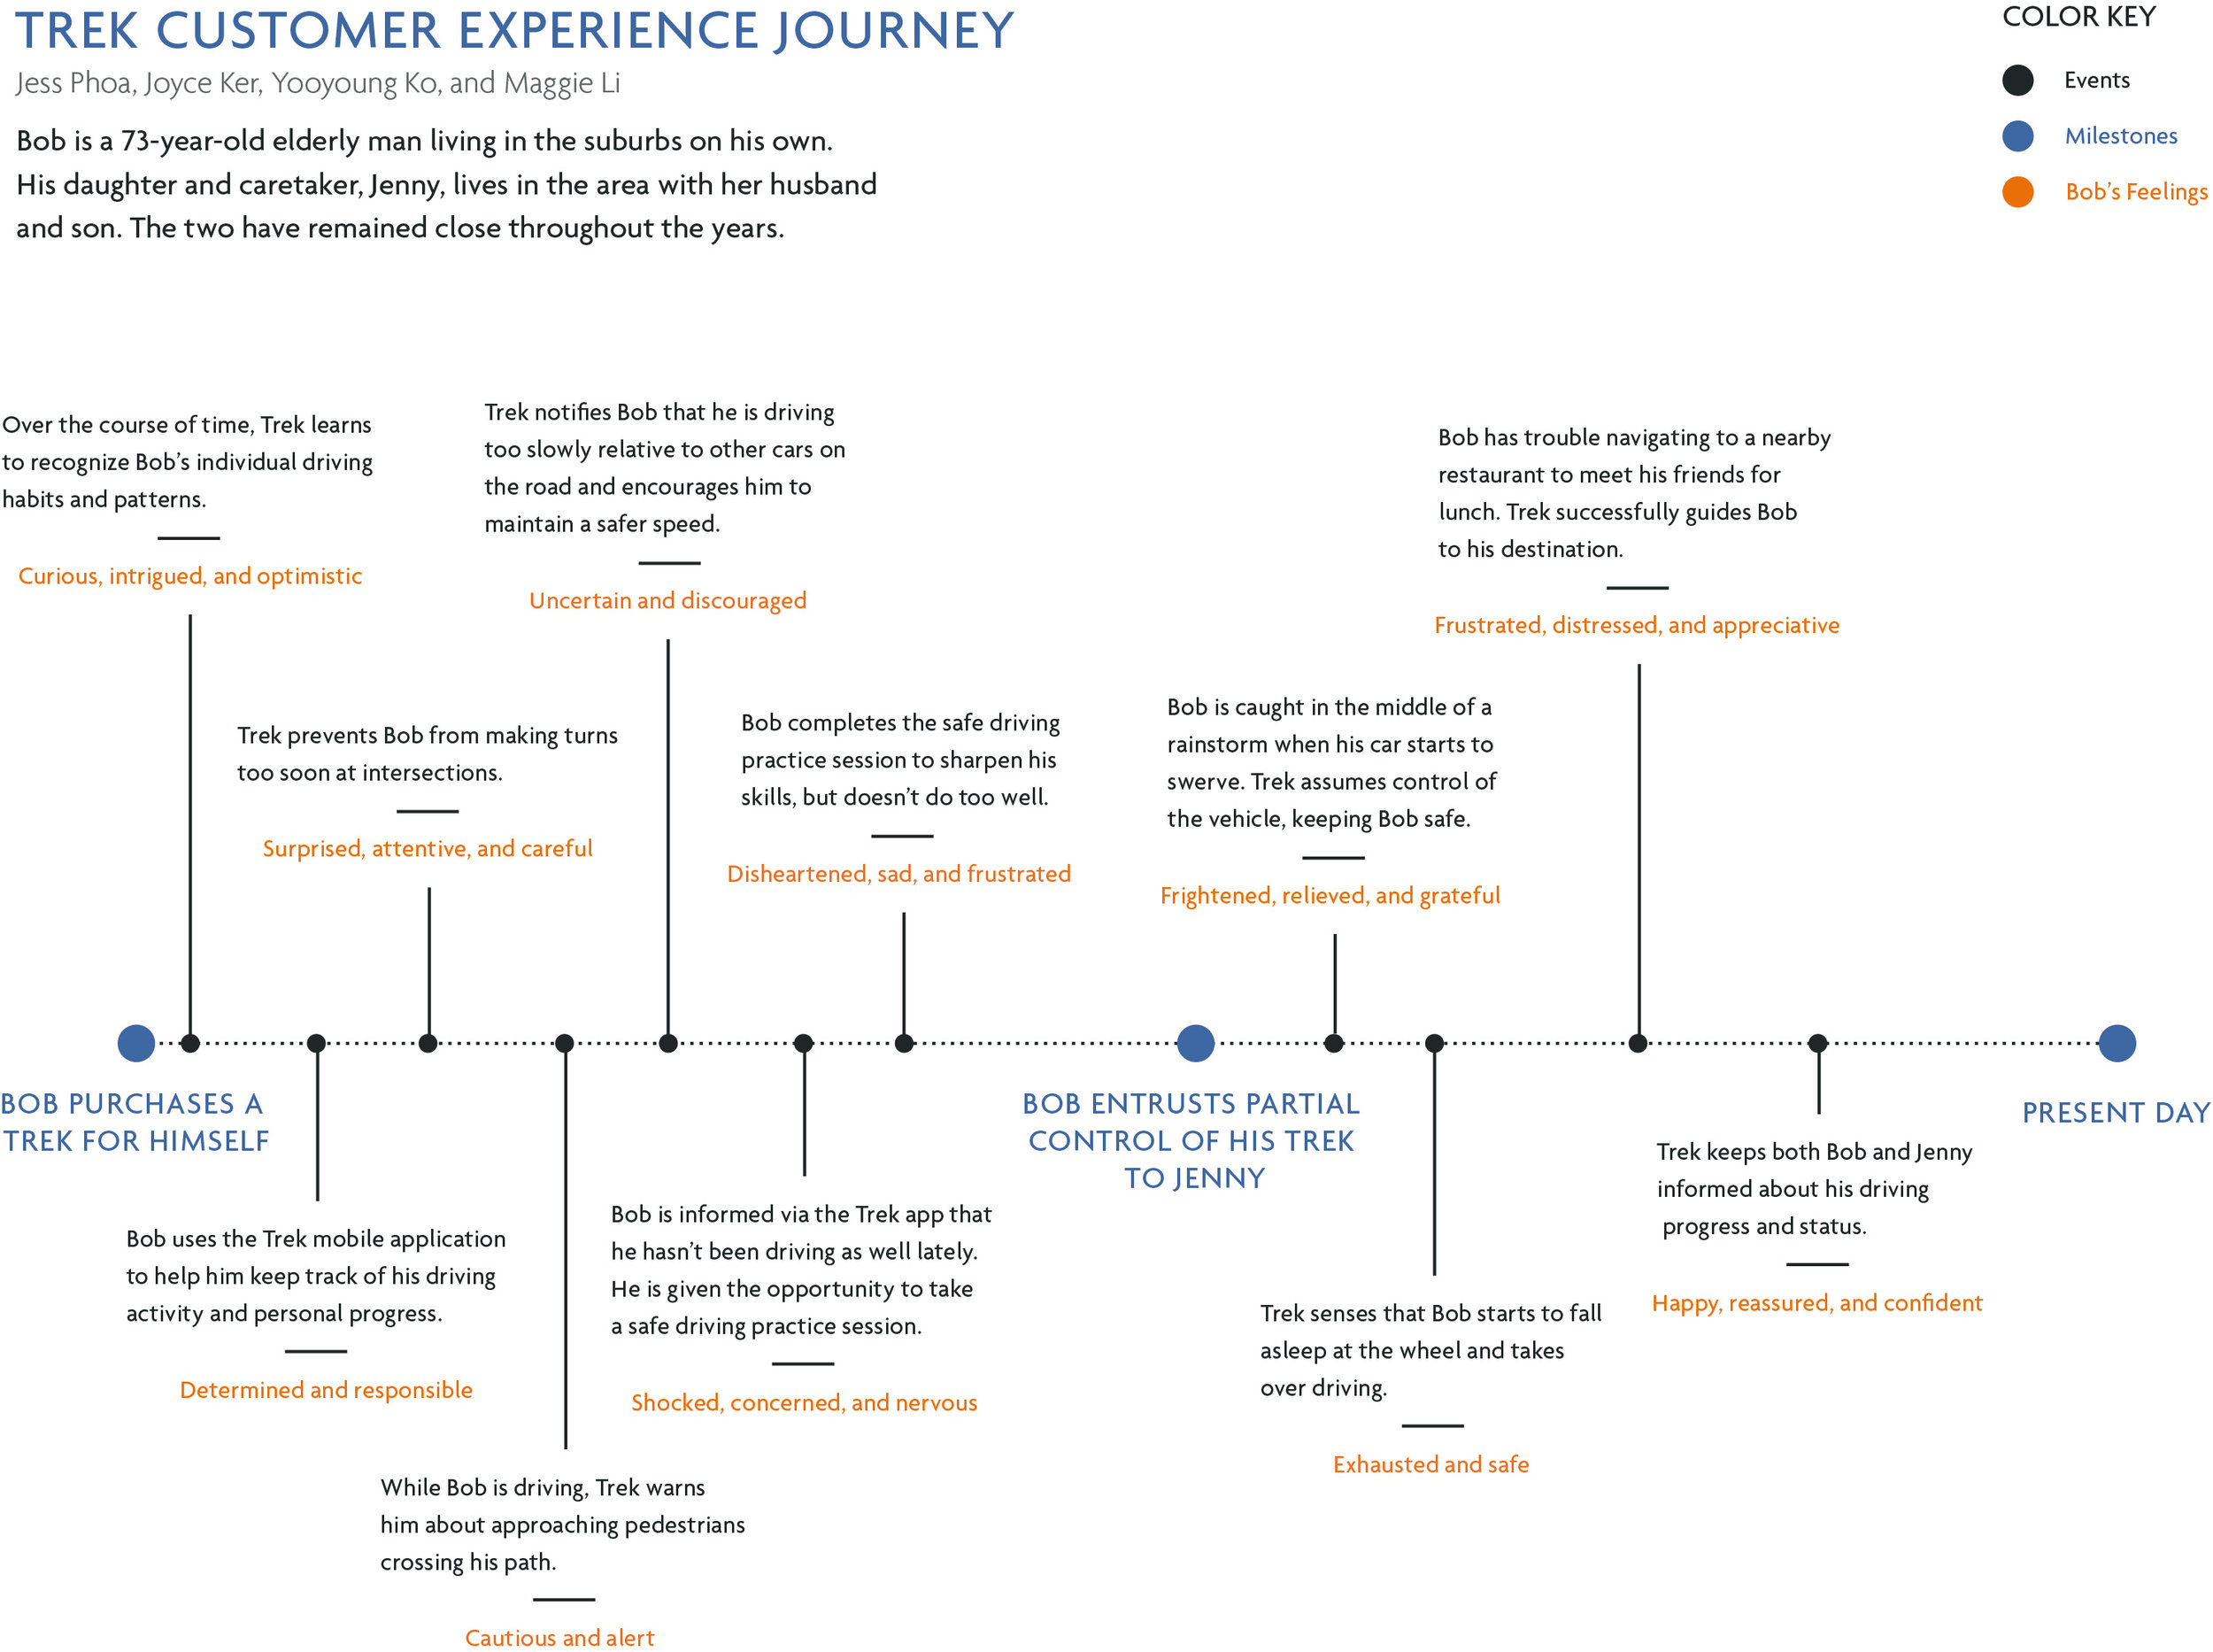 Proposed Trek customer experience journey